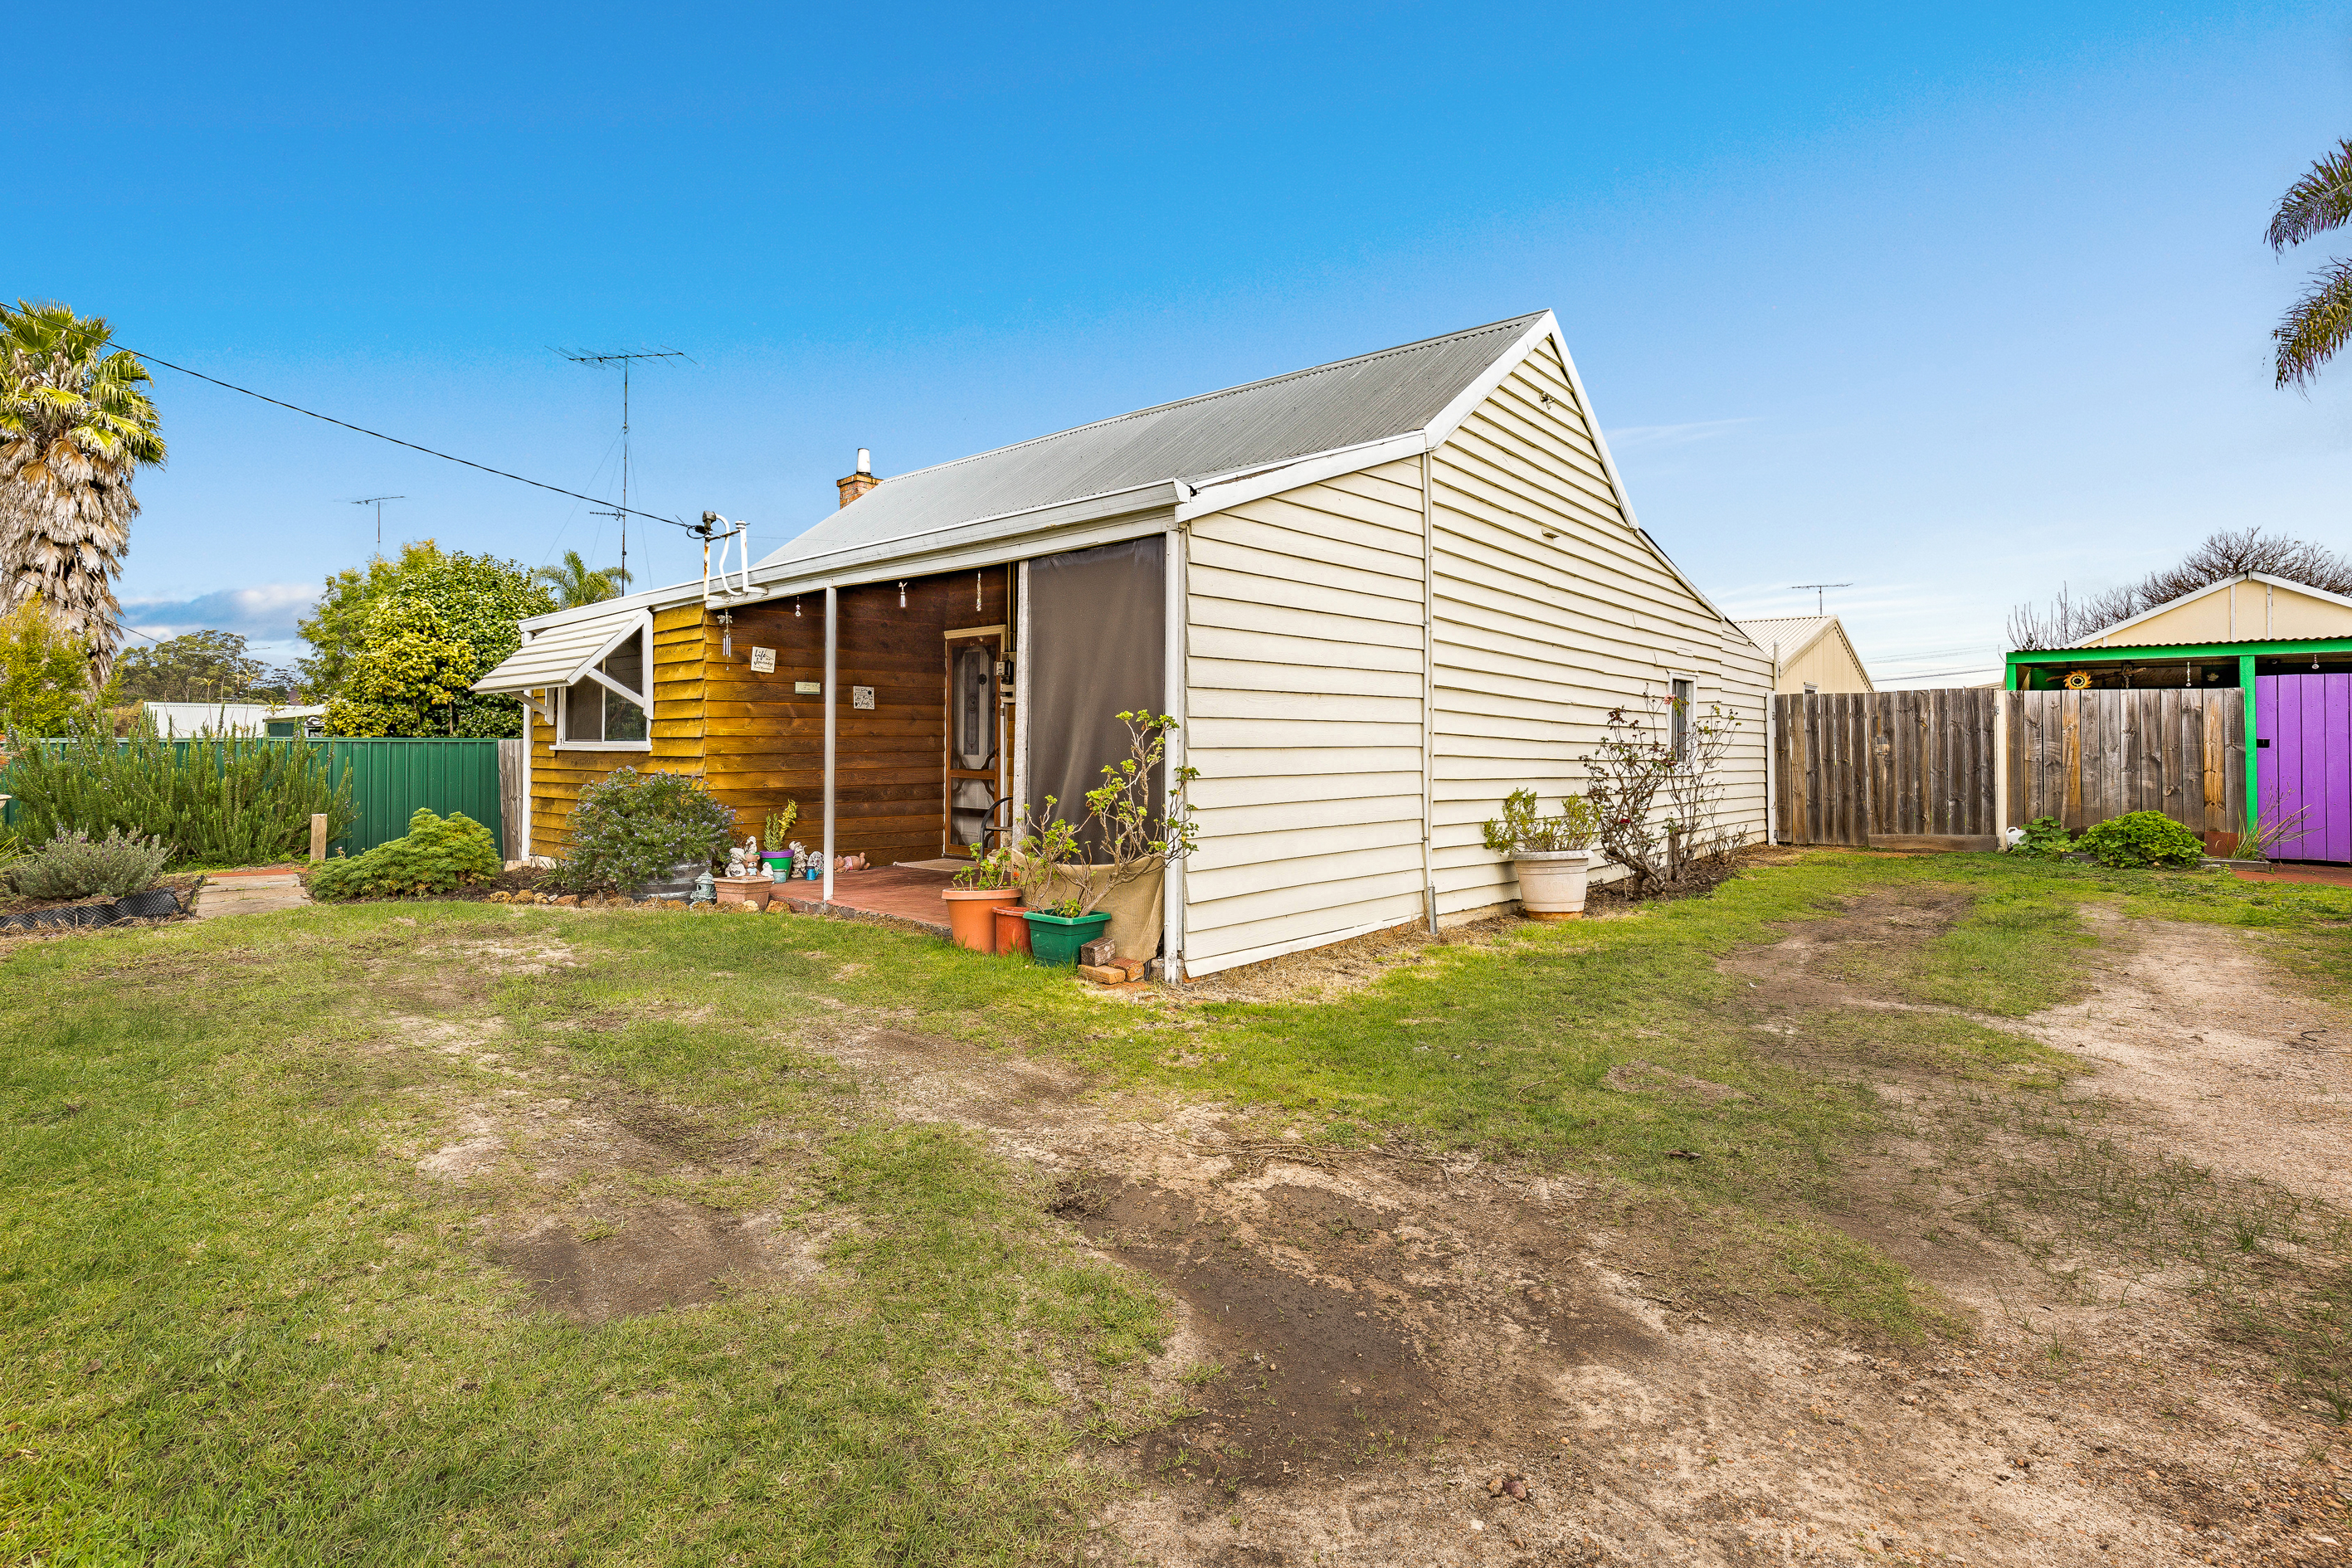 29 Somerville Street Manjimup - House For Sale - 21090639 - Acton Southwest